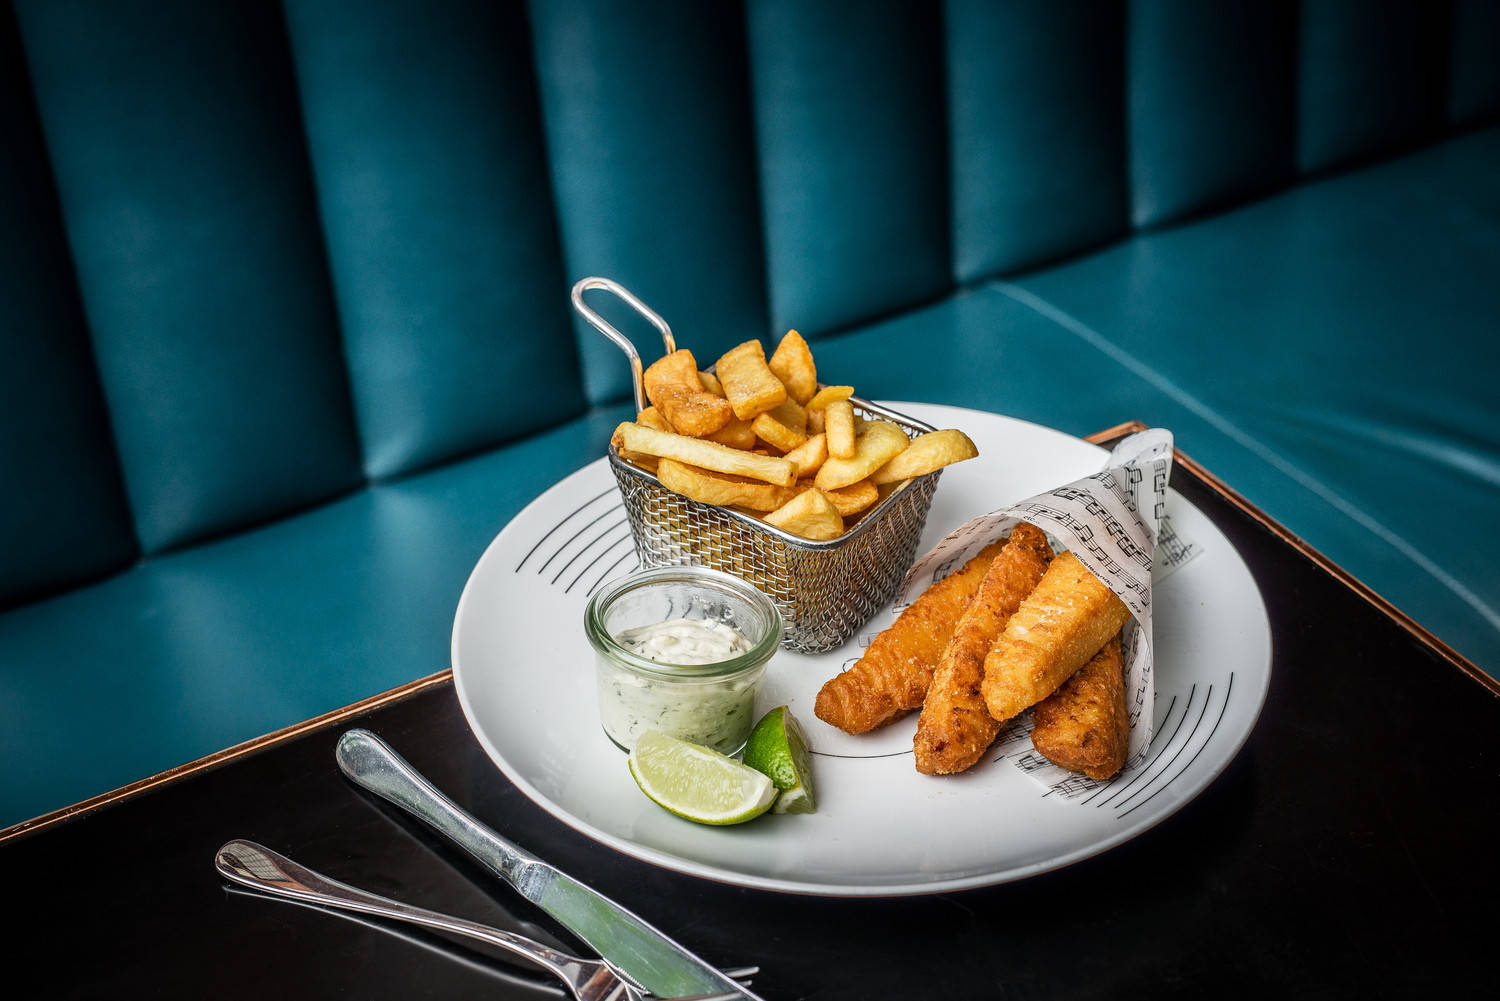 Tandoori Fish With Chips And Mint Aioli